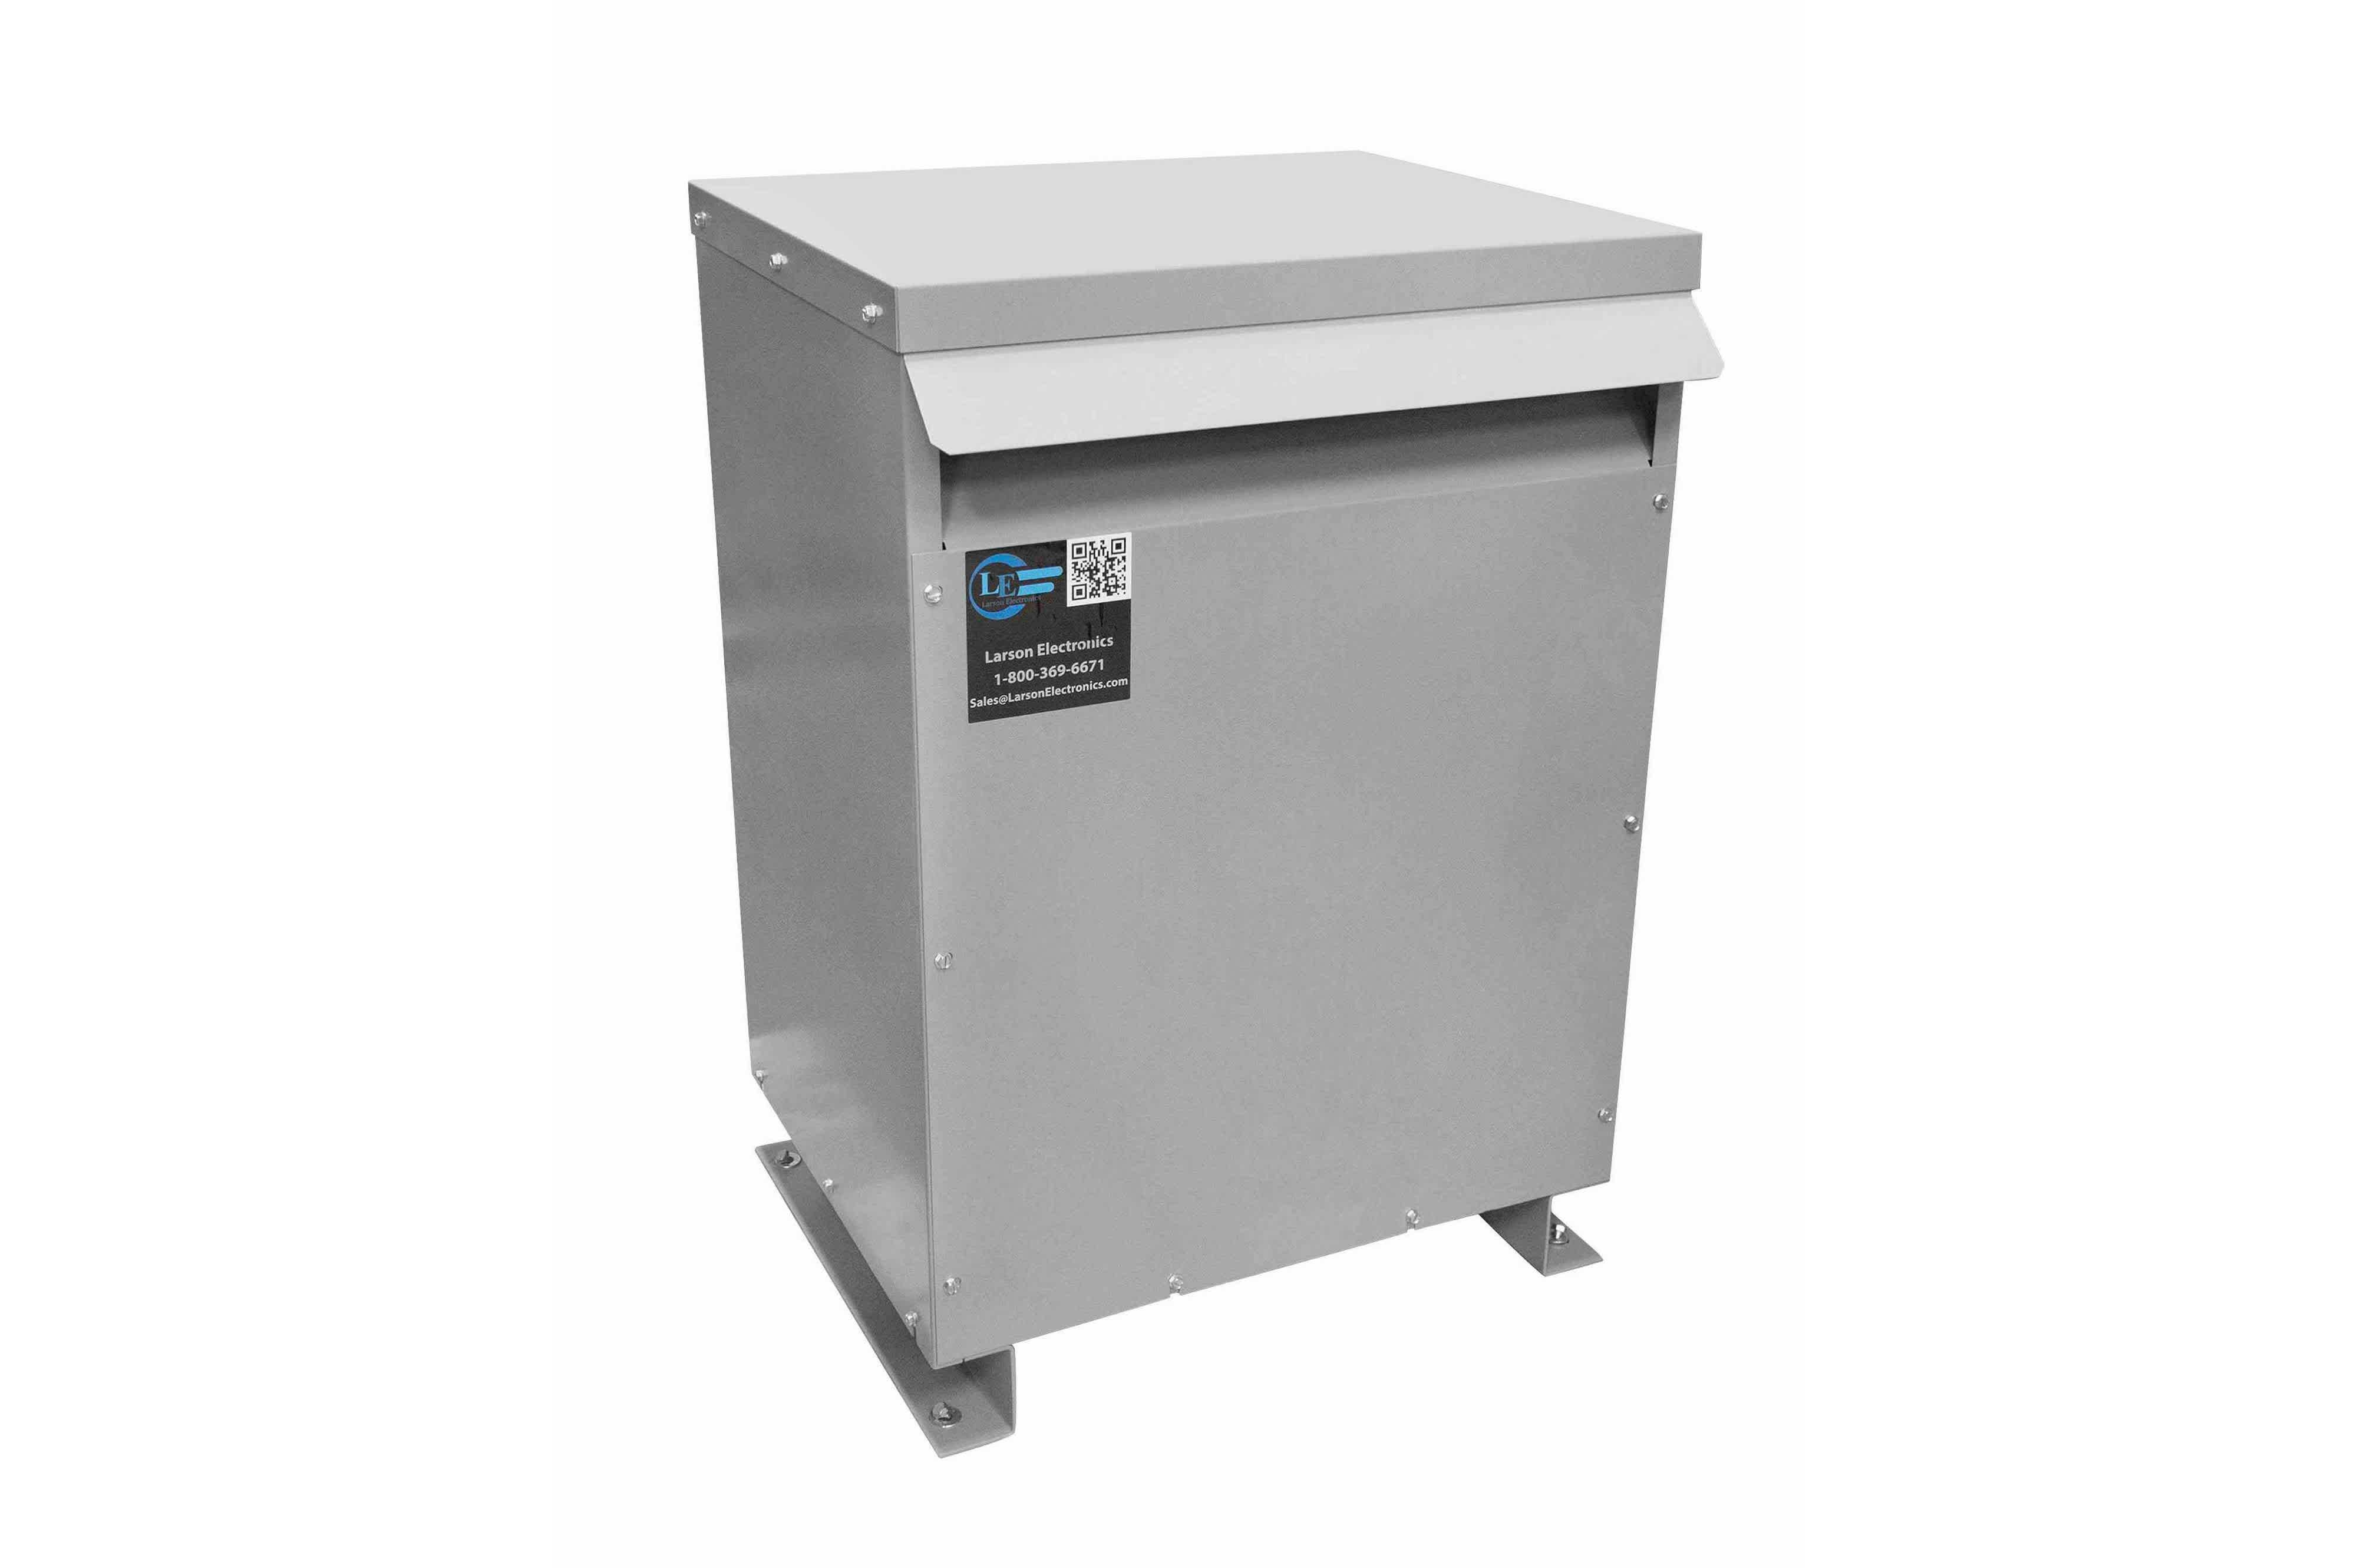 250 kVA 3PH Isolation Transformer, 575V Delta Primary, 240 Delta Secondary, N3R, Ventilated, 60 Hz